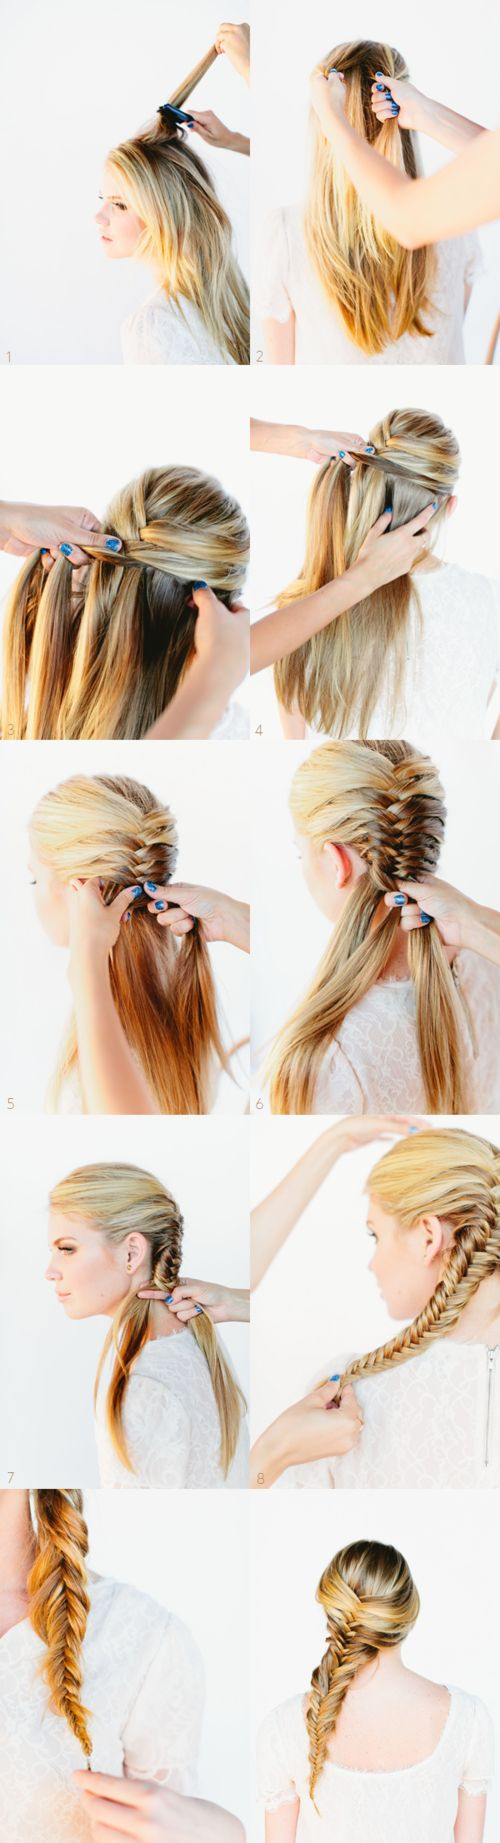 Long hair styles //In need of a detox? 10% off using our discount code 'Pinterest10' at www.ThinTea.com.au